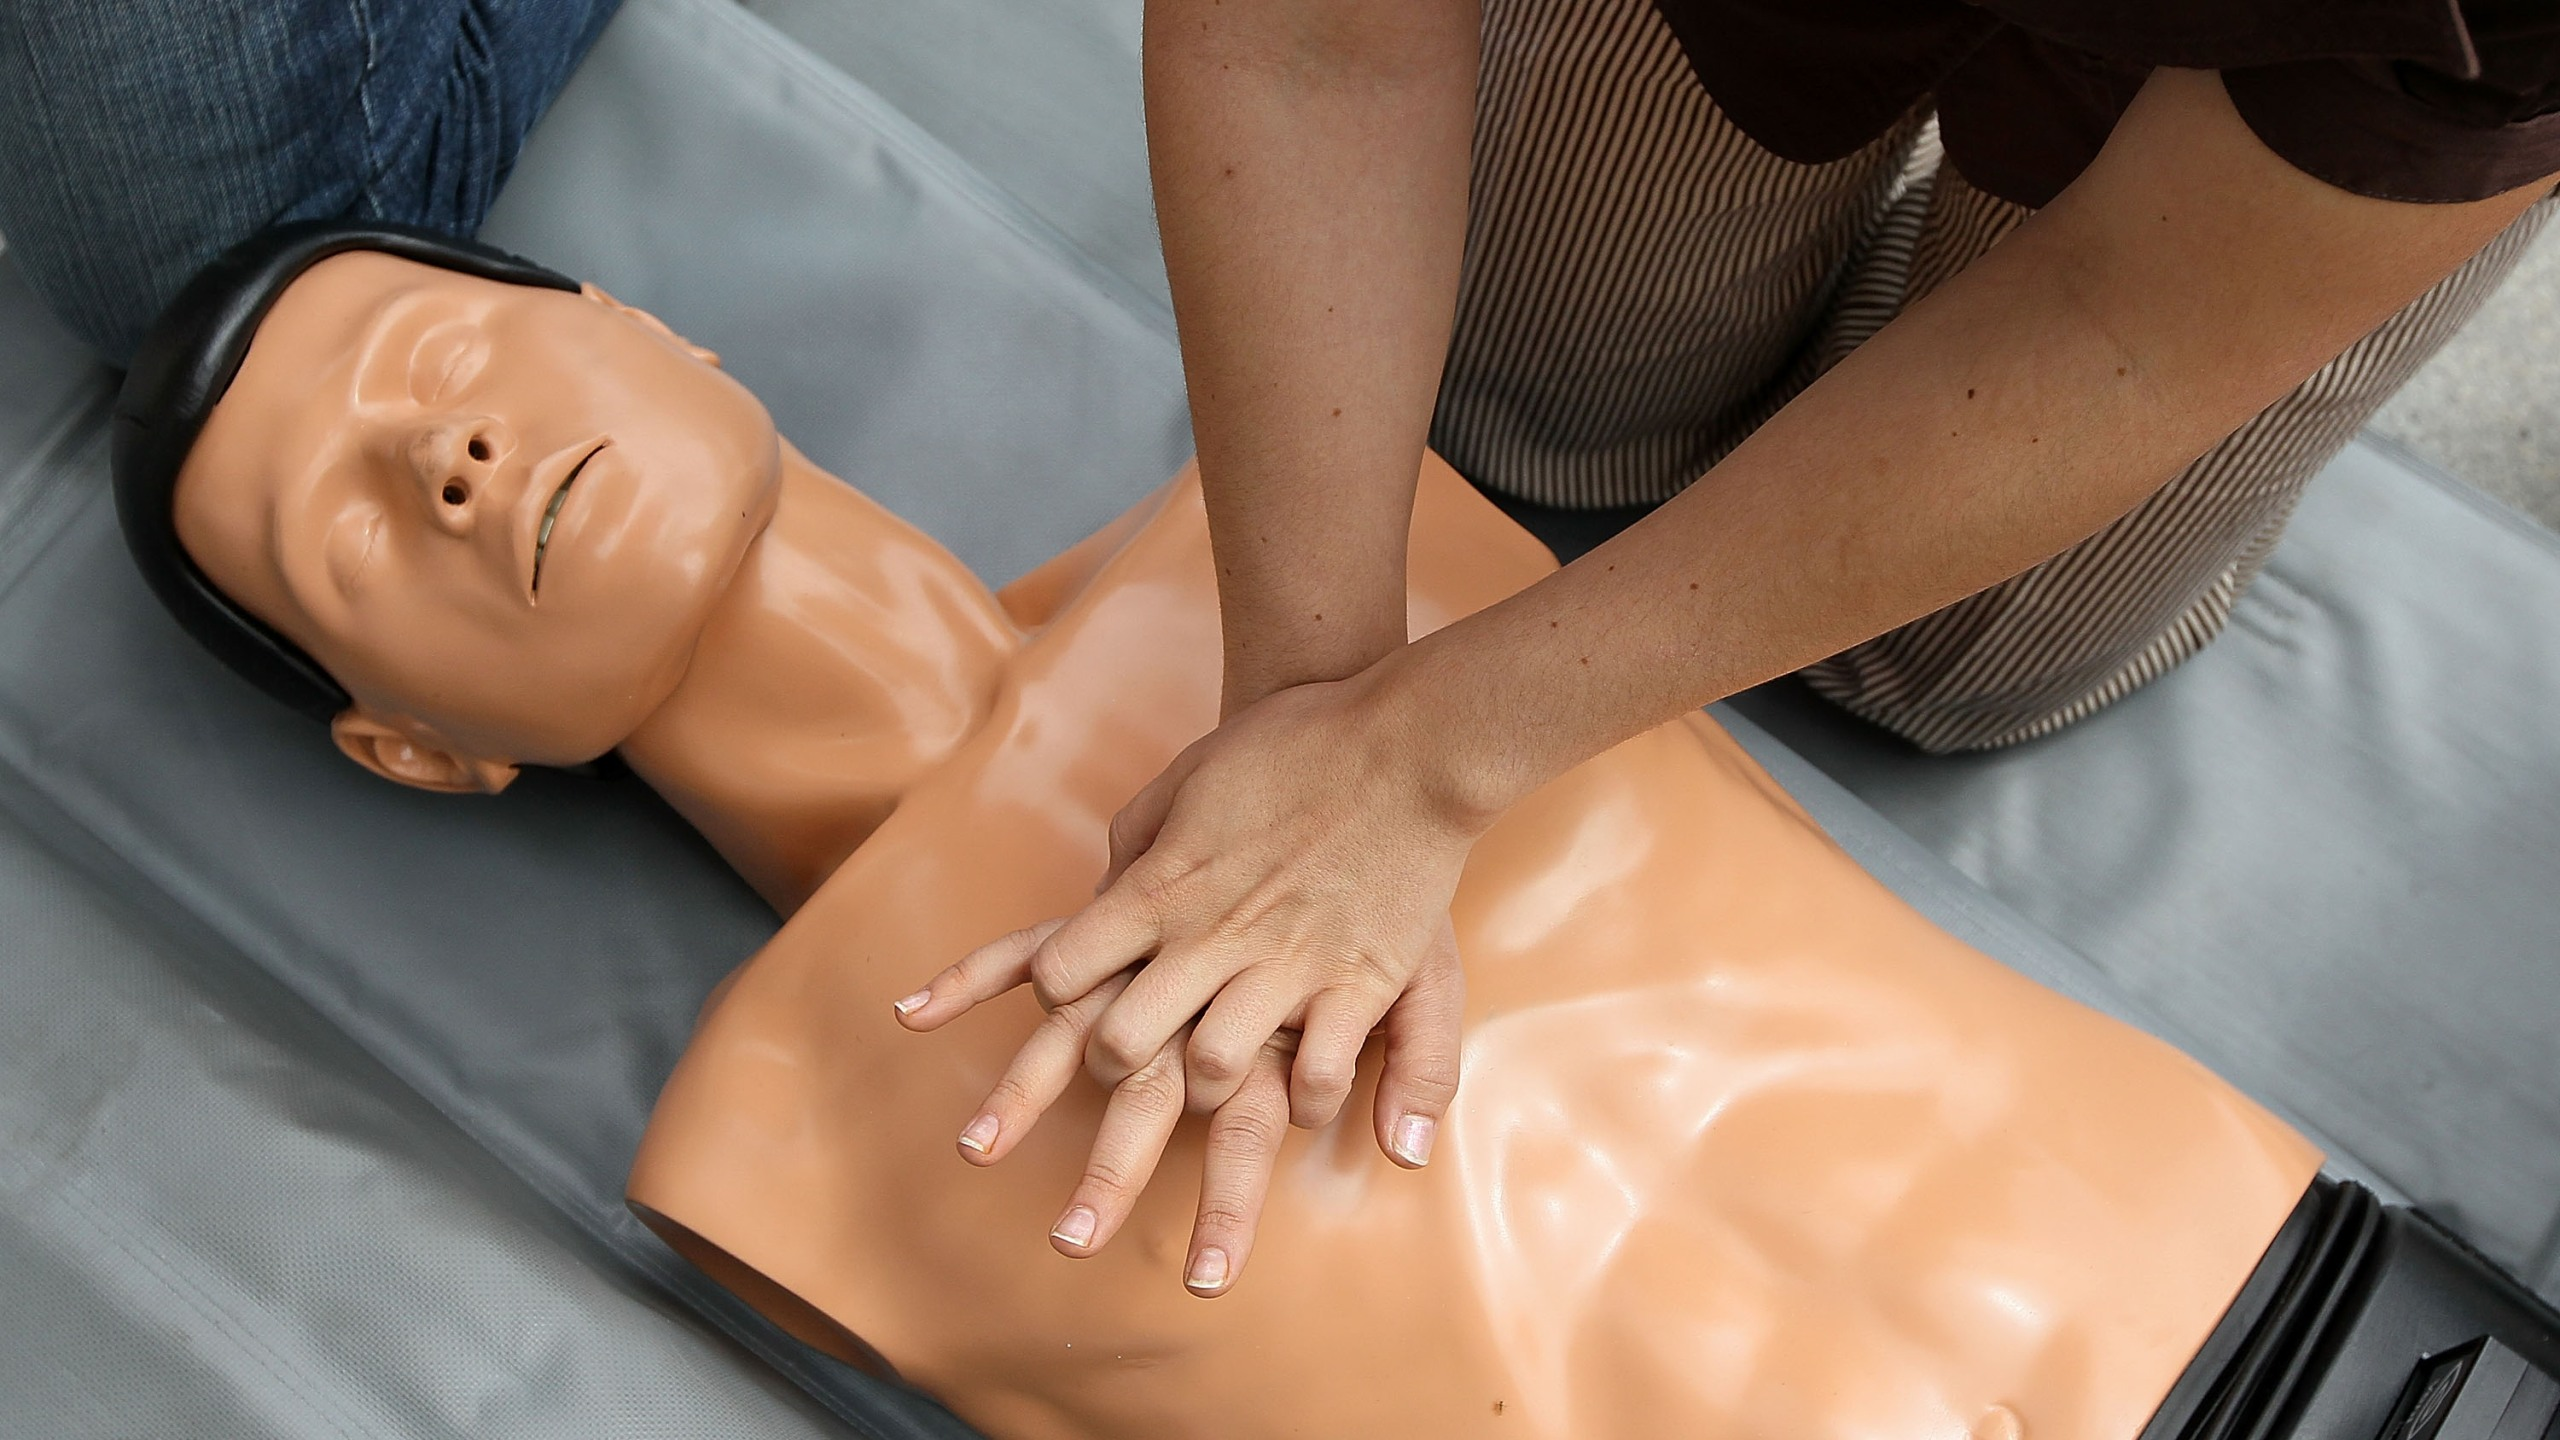 SAN FRANCISCO - JUNE 01: A woman performs chest compressions on a mannequin while learning C.P.R. on the steps of San Francisco city hall following a press conference celebrating the 50th anniversary of lifesaving by using C.P.R. June 1, 2010 in San Francisco, California. Dozens of people stopped for free C.P.R. lessons given by volunteers from the San Francisco Paramedic Association. C.P.R. (cardiopulmonary resuscitation) is a combination of rescue breathing and chest compressions delivered to aid victims who are in cardiac arrest by keeping oxegenated blood flowing to vital organs. (Photo by Justin Sullivan/Getty Images)